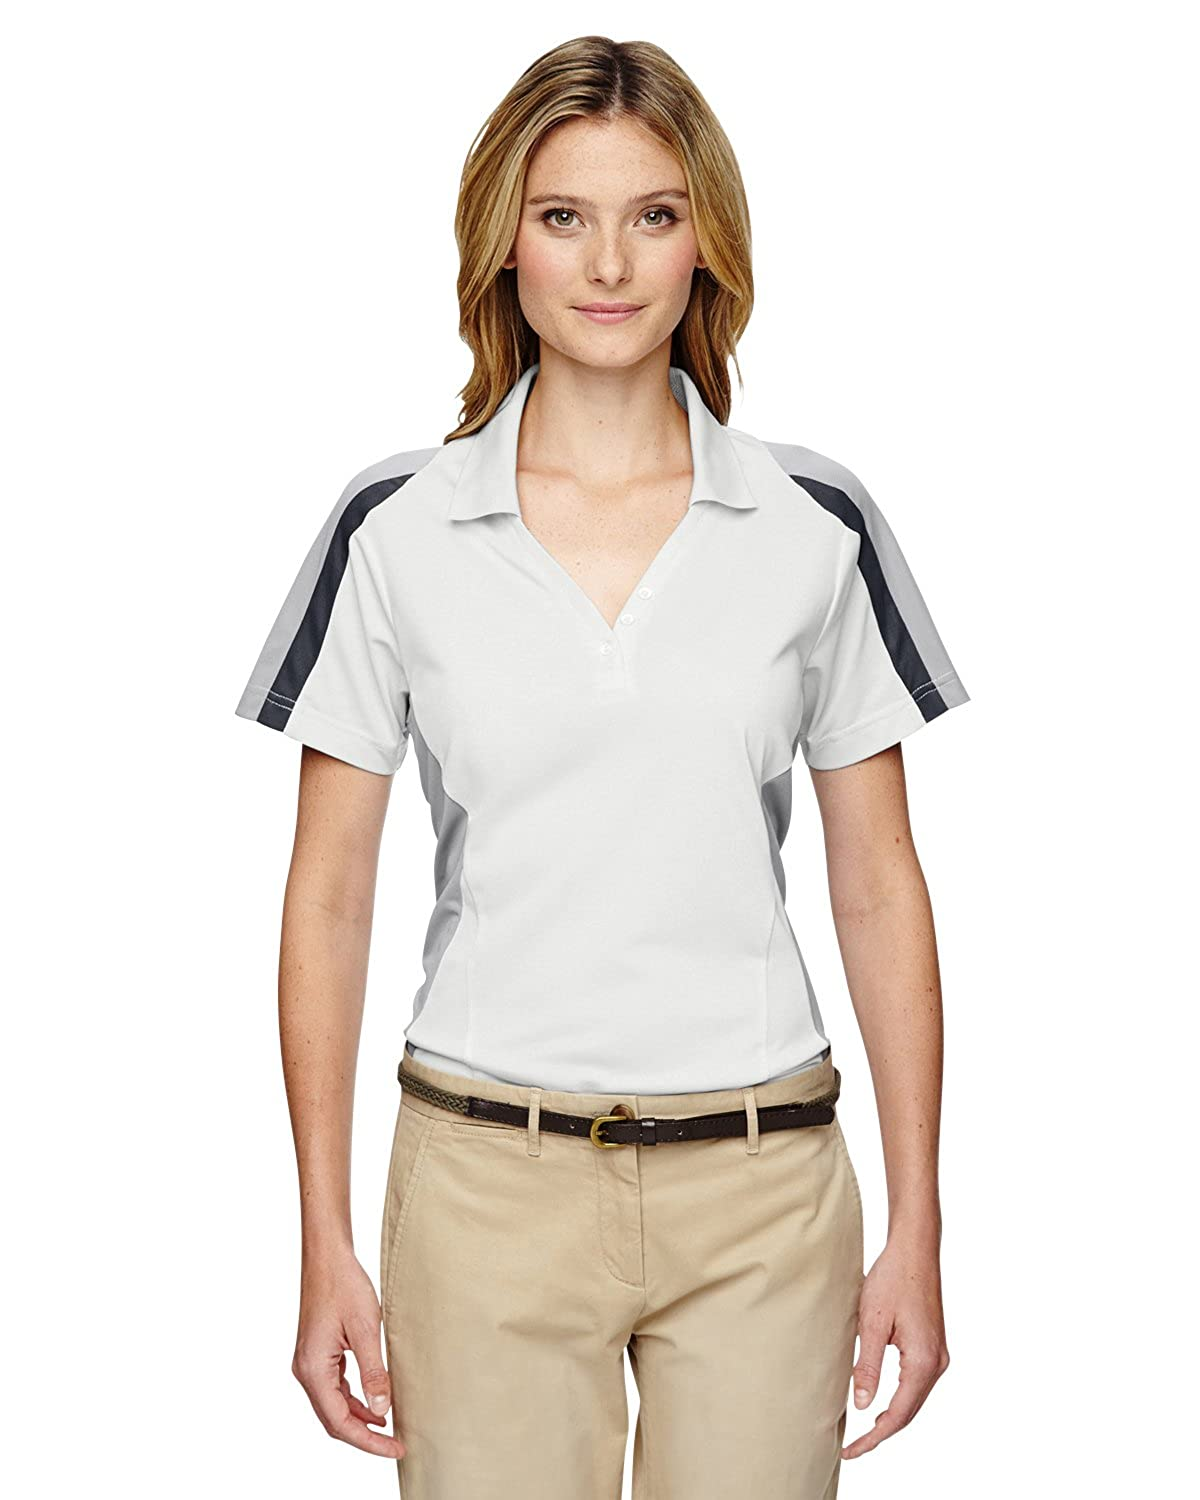 75119 Extreme Womens Eperformance Strike Colorblock Snag Protection Polo